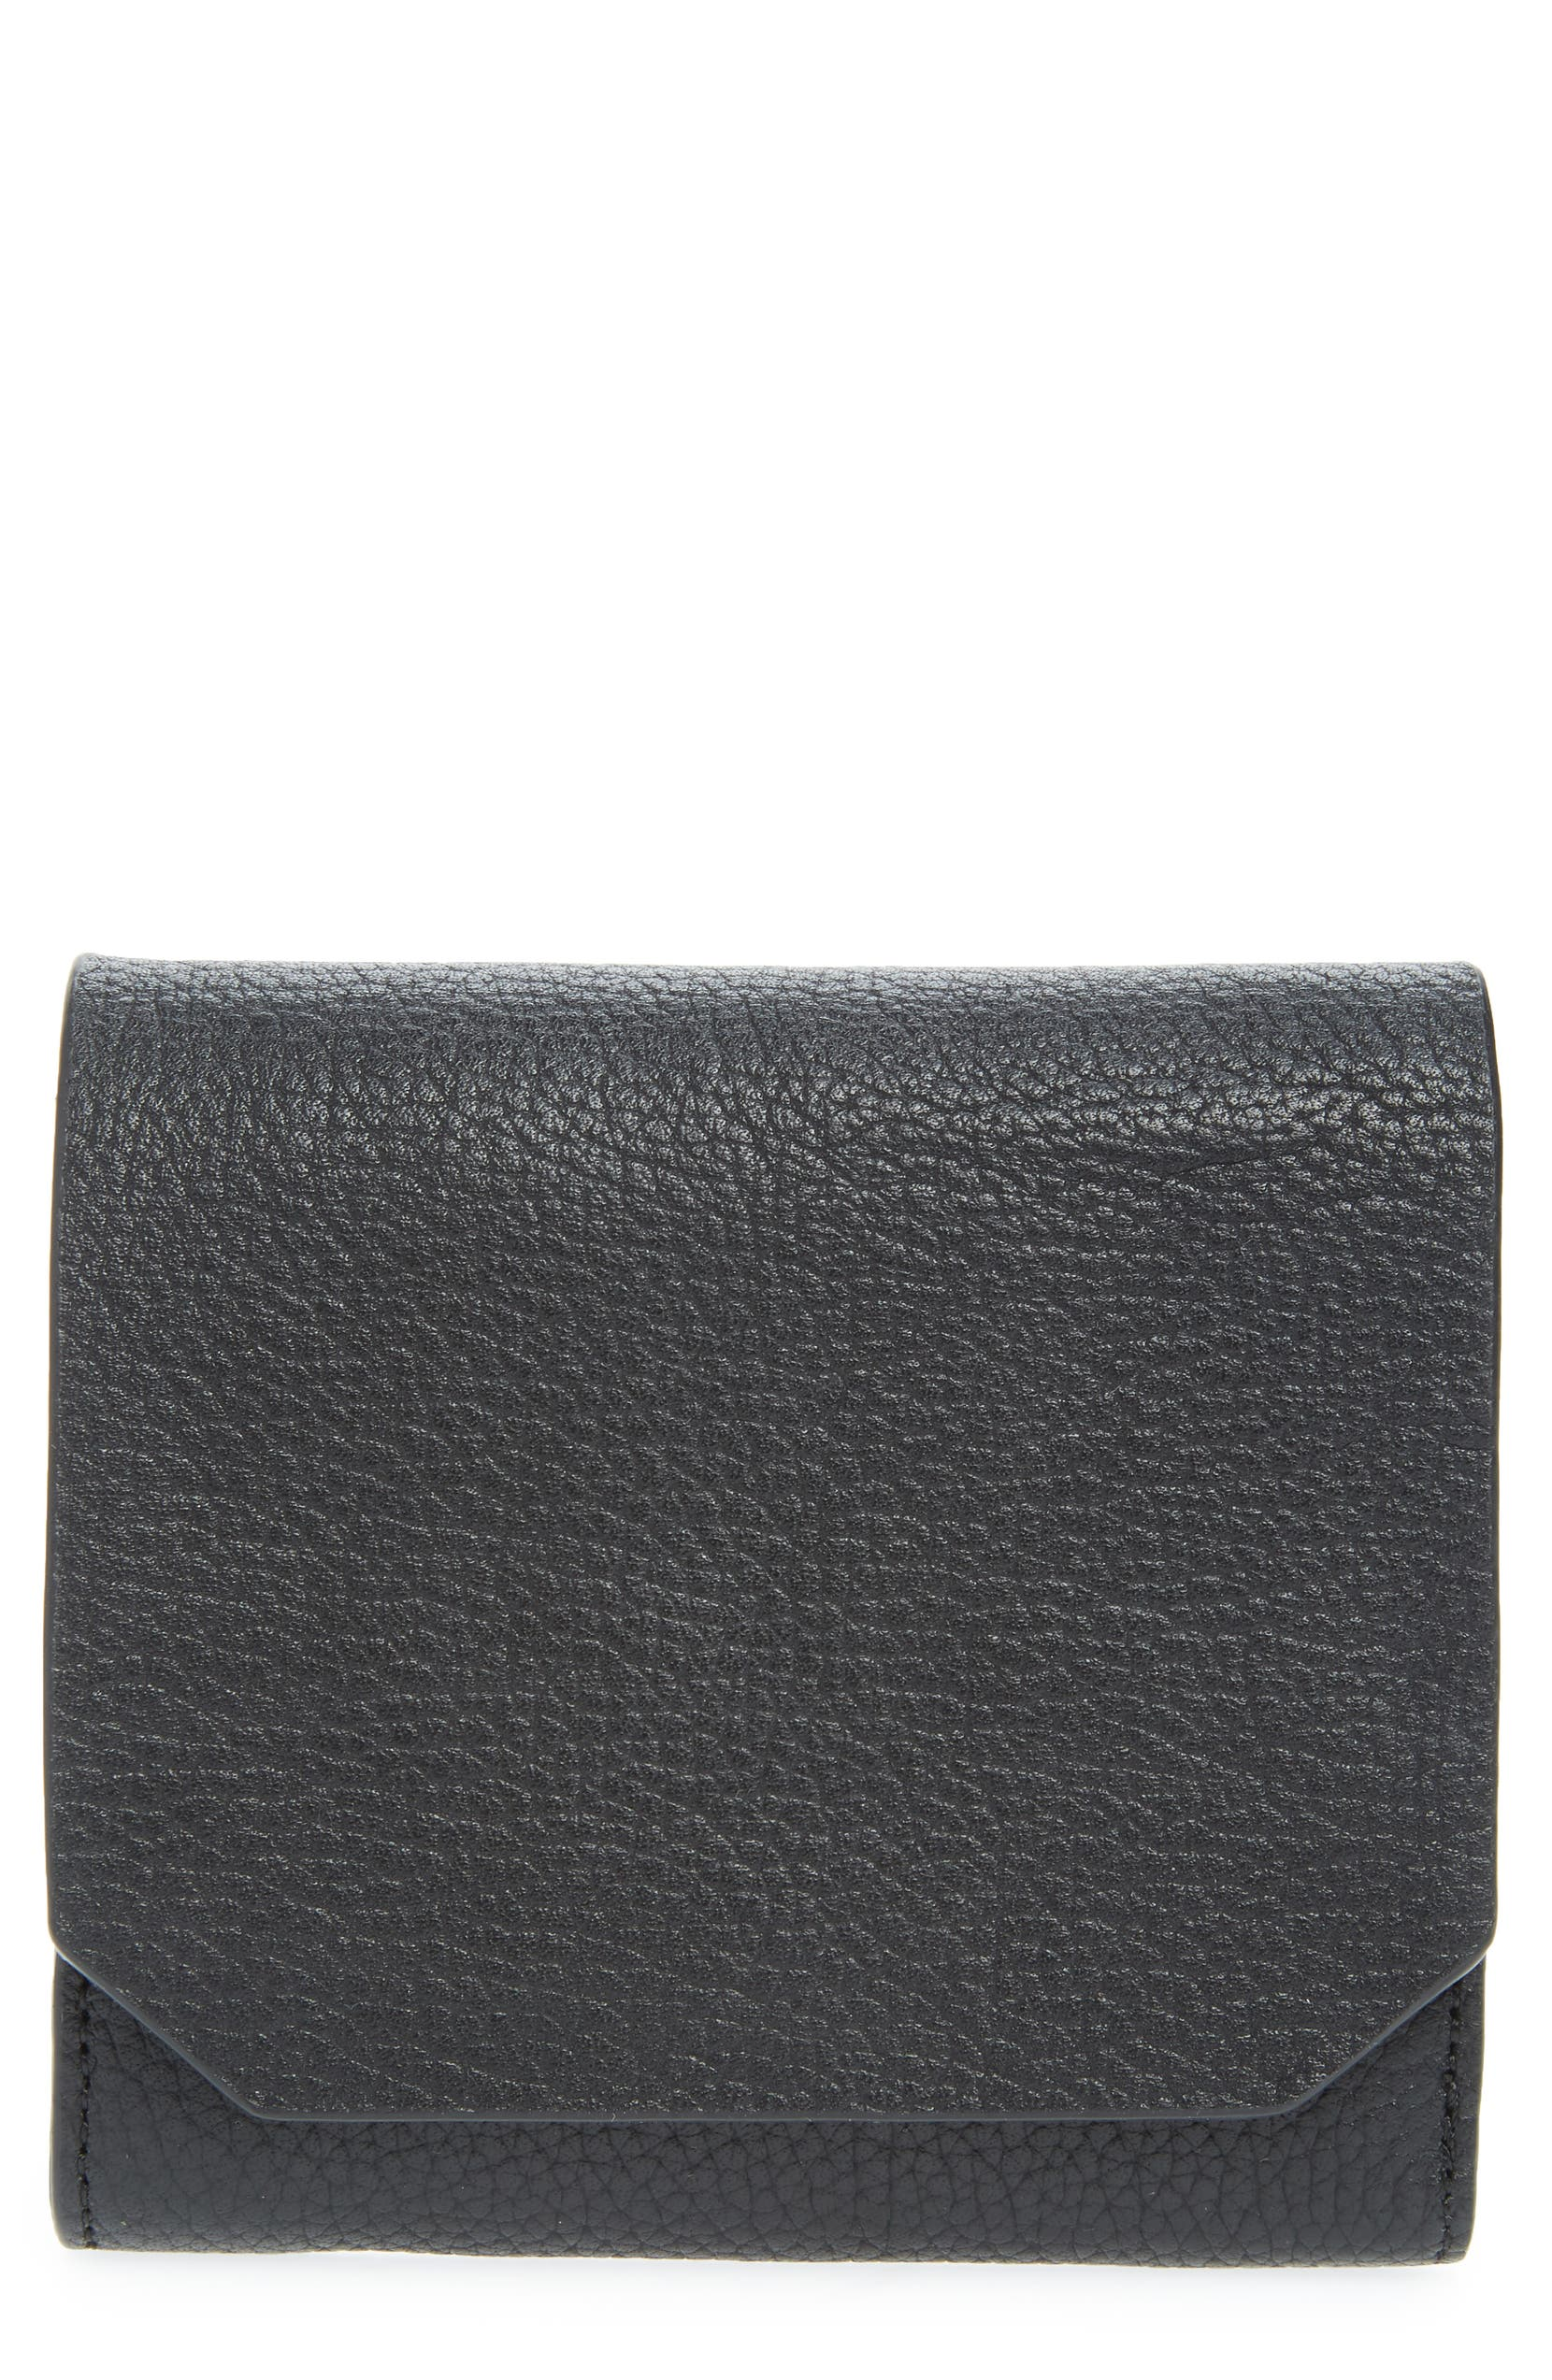 ca0b25d47b3 Nordstrom Leather Trifold Wallet | Nordstrom